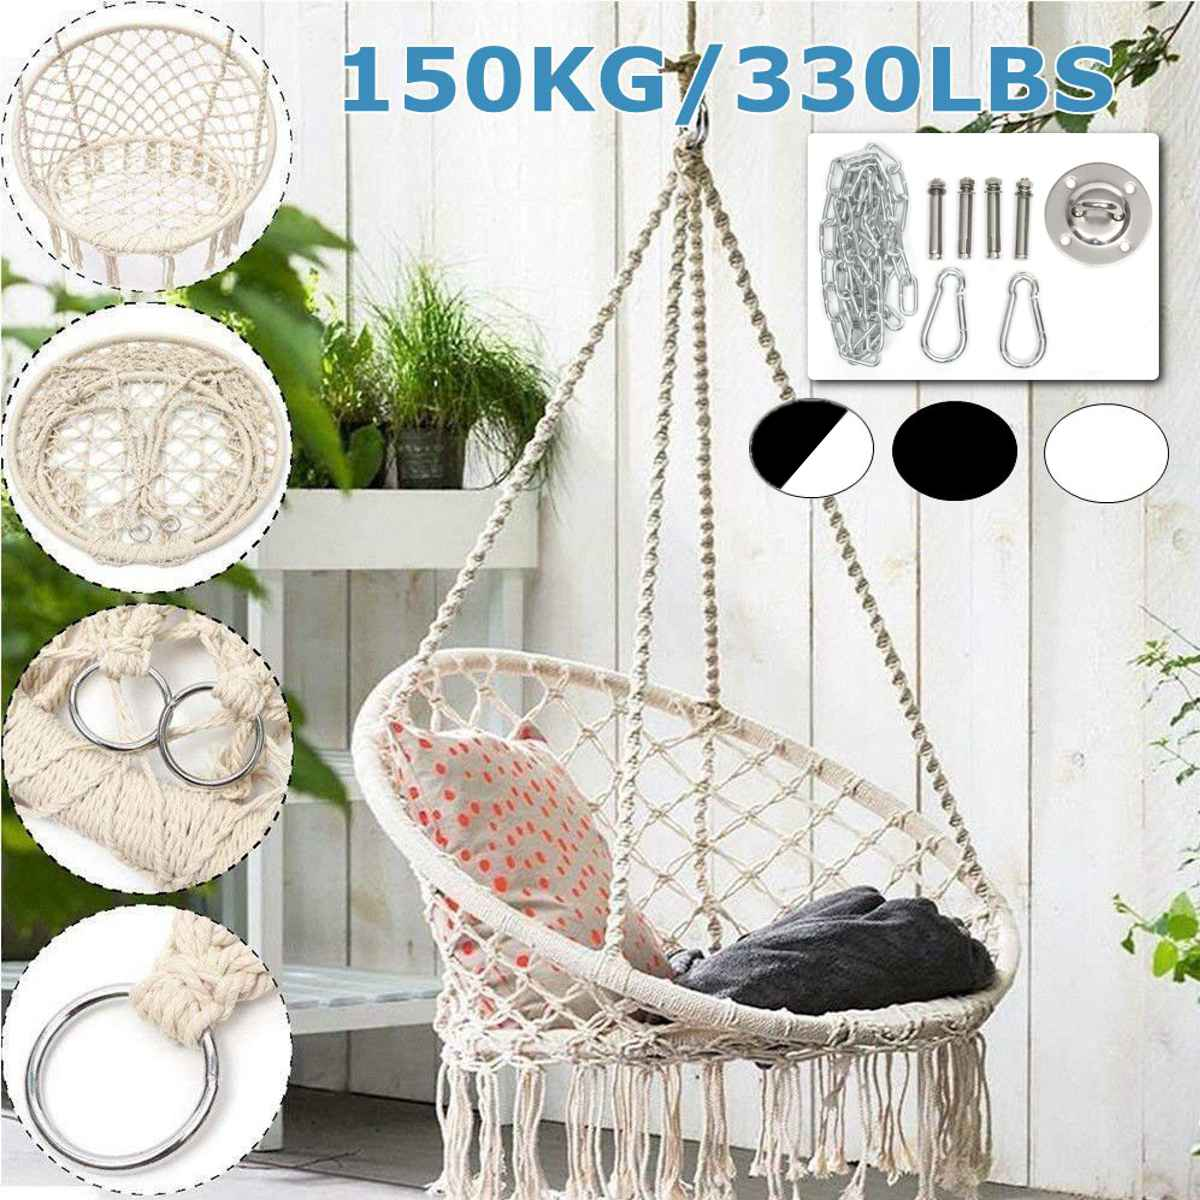 360 Rotation Cotton Rope Hammock Chair Handmade Knitted Indoor Outdoor Kids Swing Bed Adult Swinging Hanging Chair Hammock